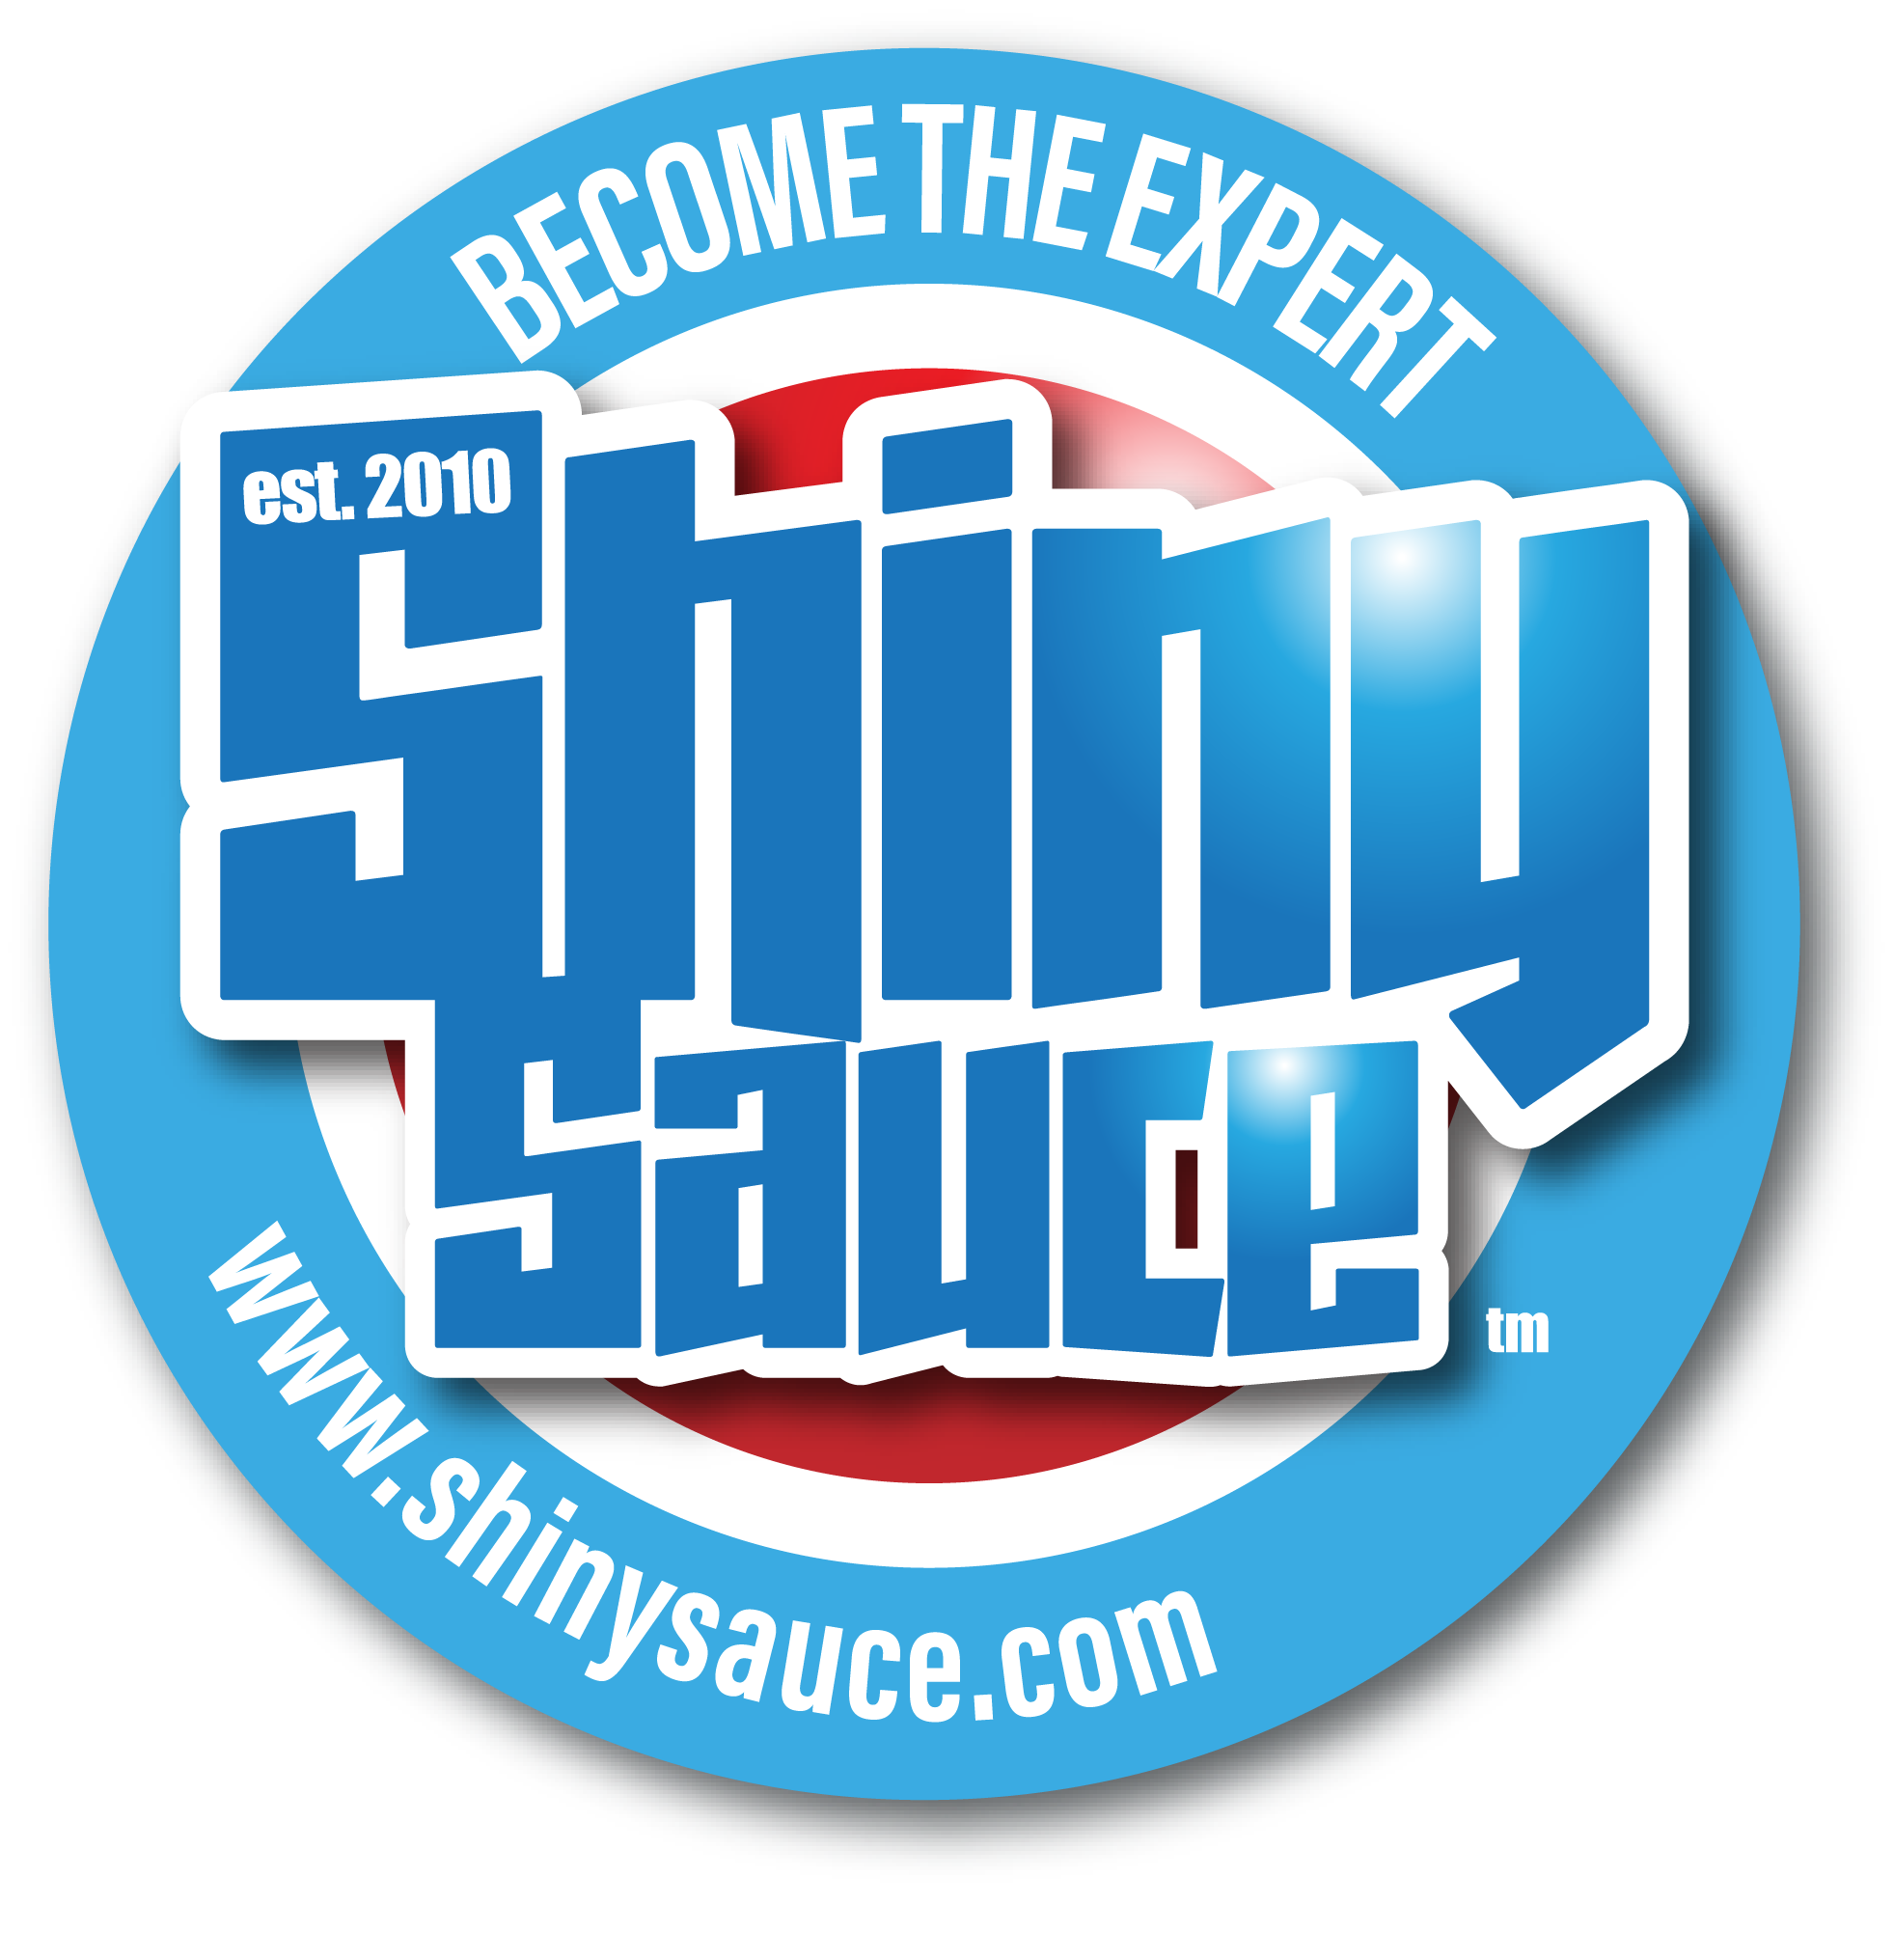 Shiny Sauce logo, be the expert